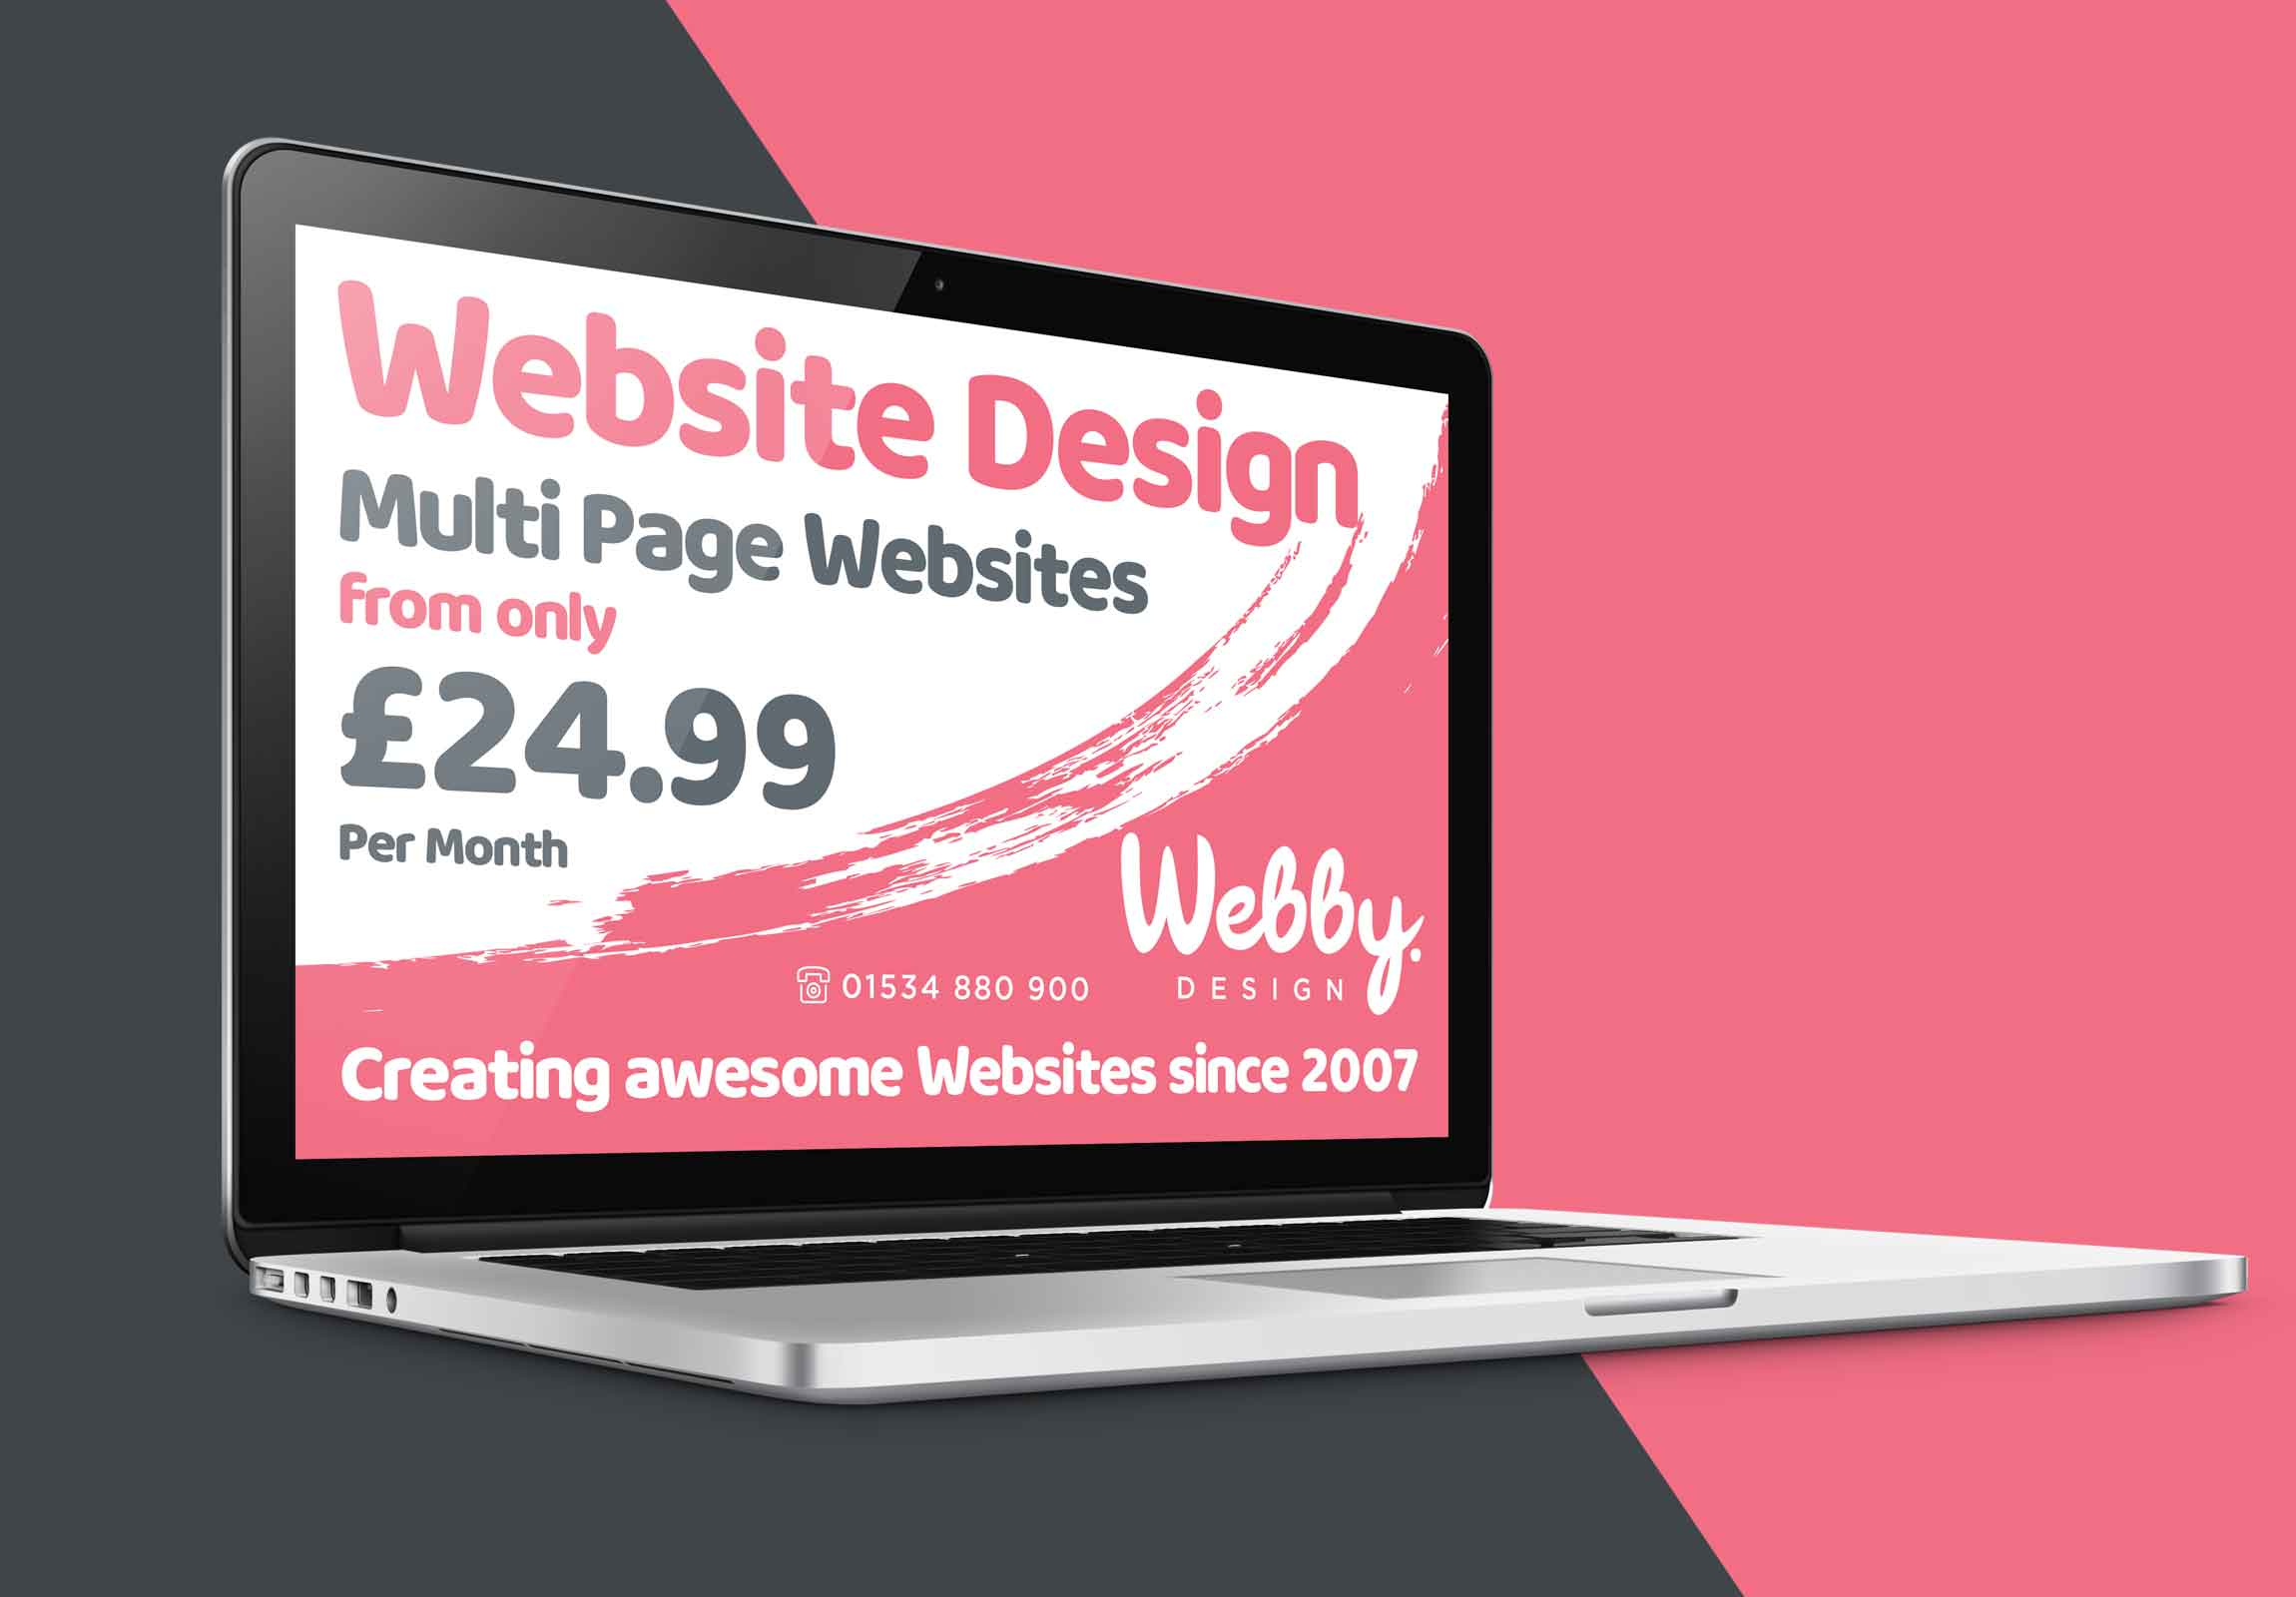 Webby.Design Pay Monthly Website design services